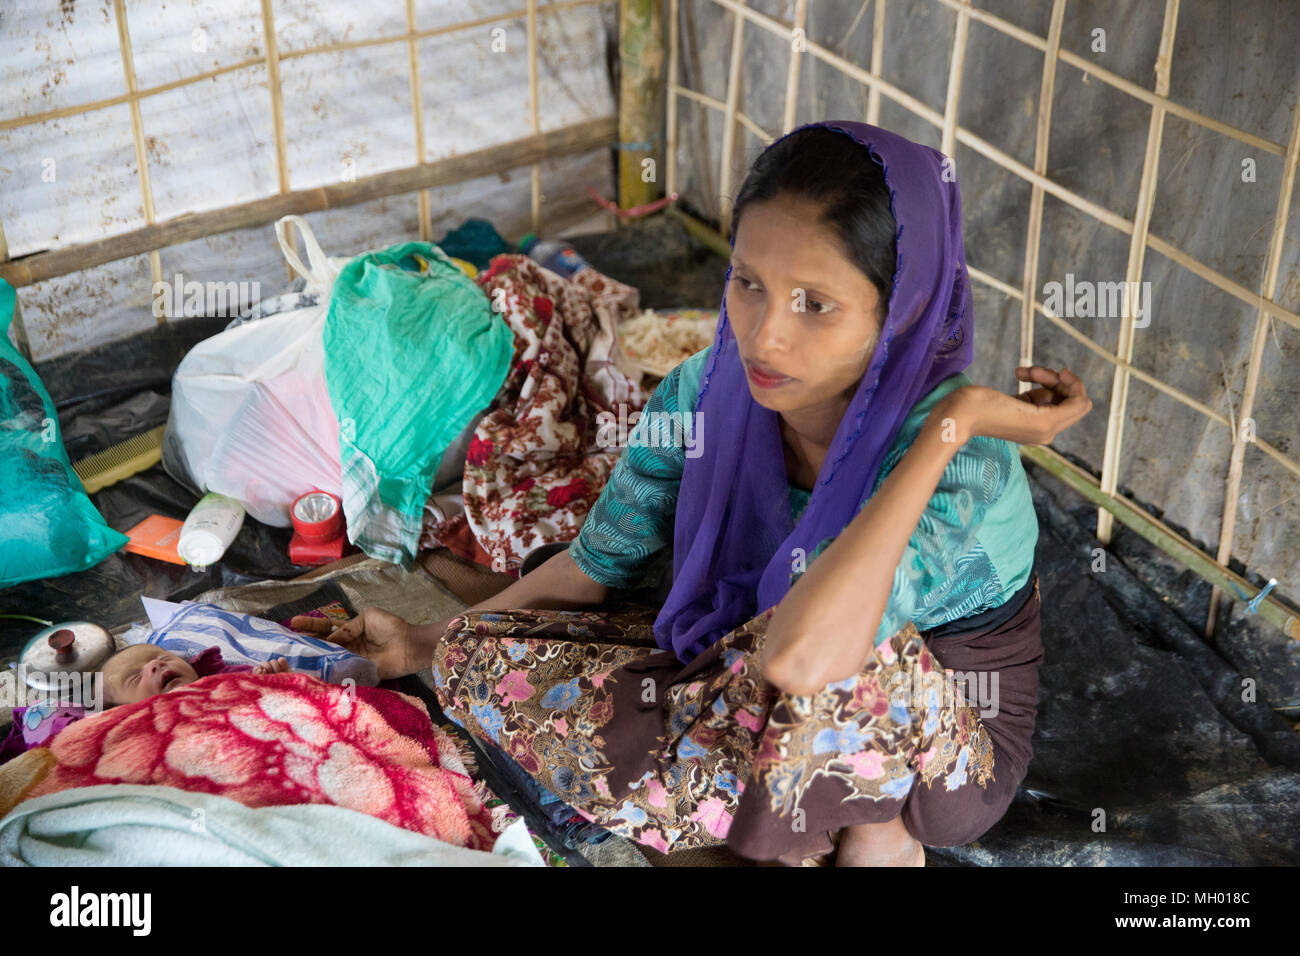 A Rohingya woman and her new born child inside her tent at Balukhali Refugee Camp at Ukhia in Cox's Bazar, Bangladesh - Stock Image